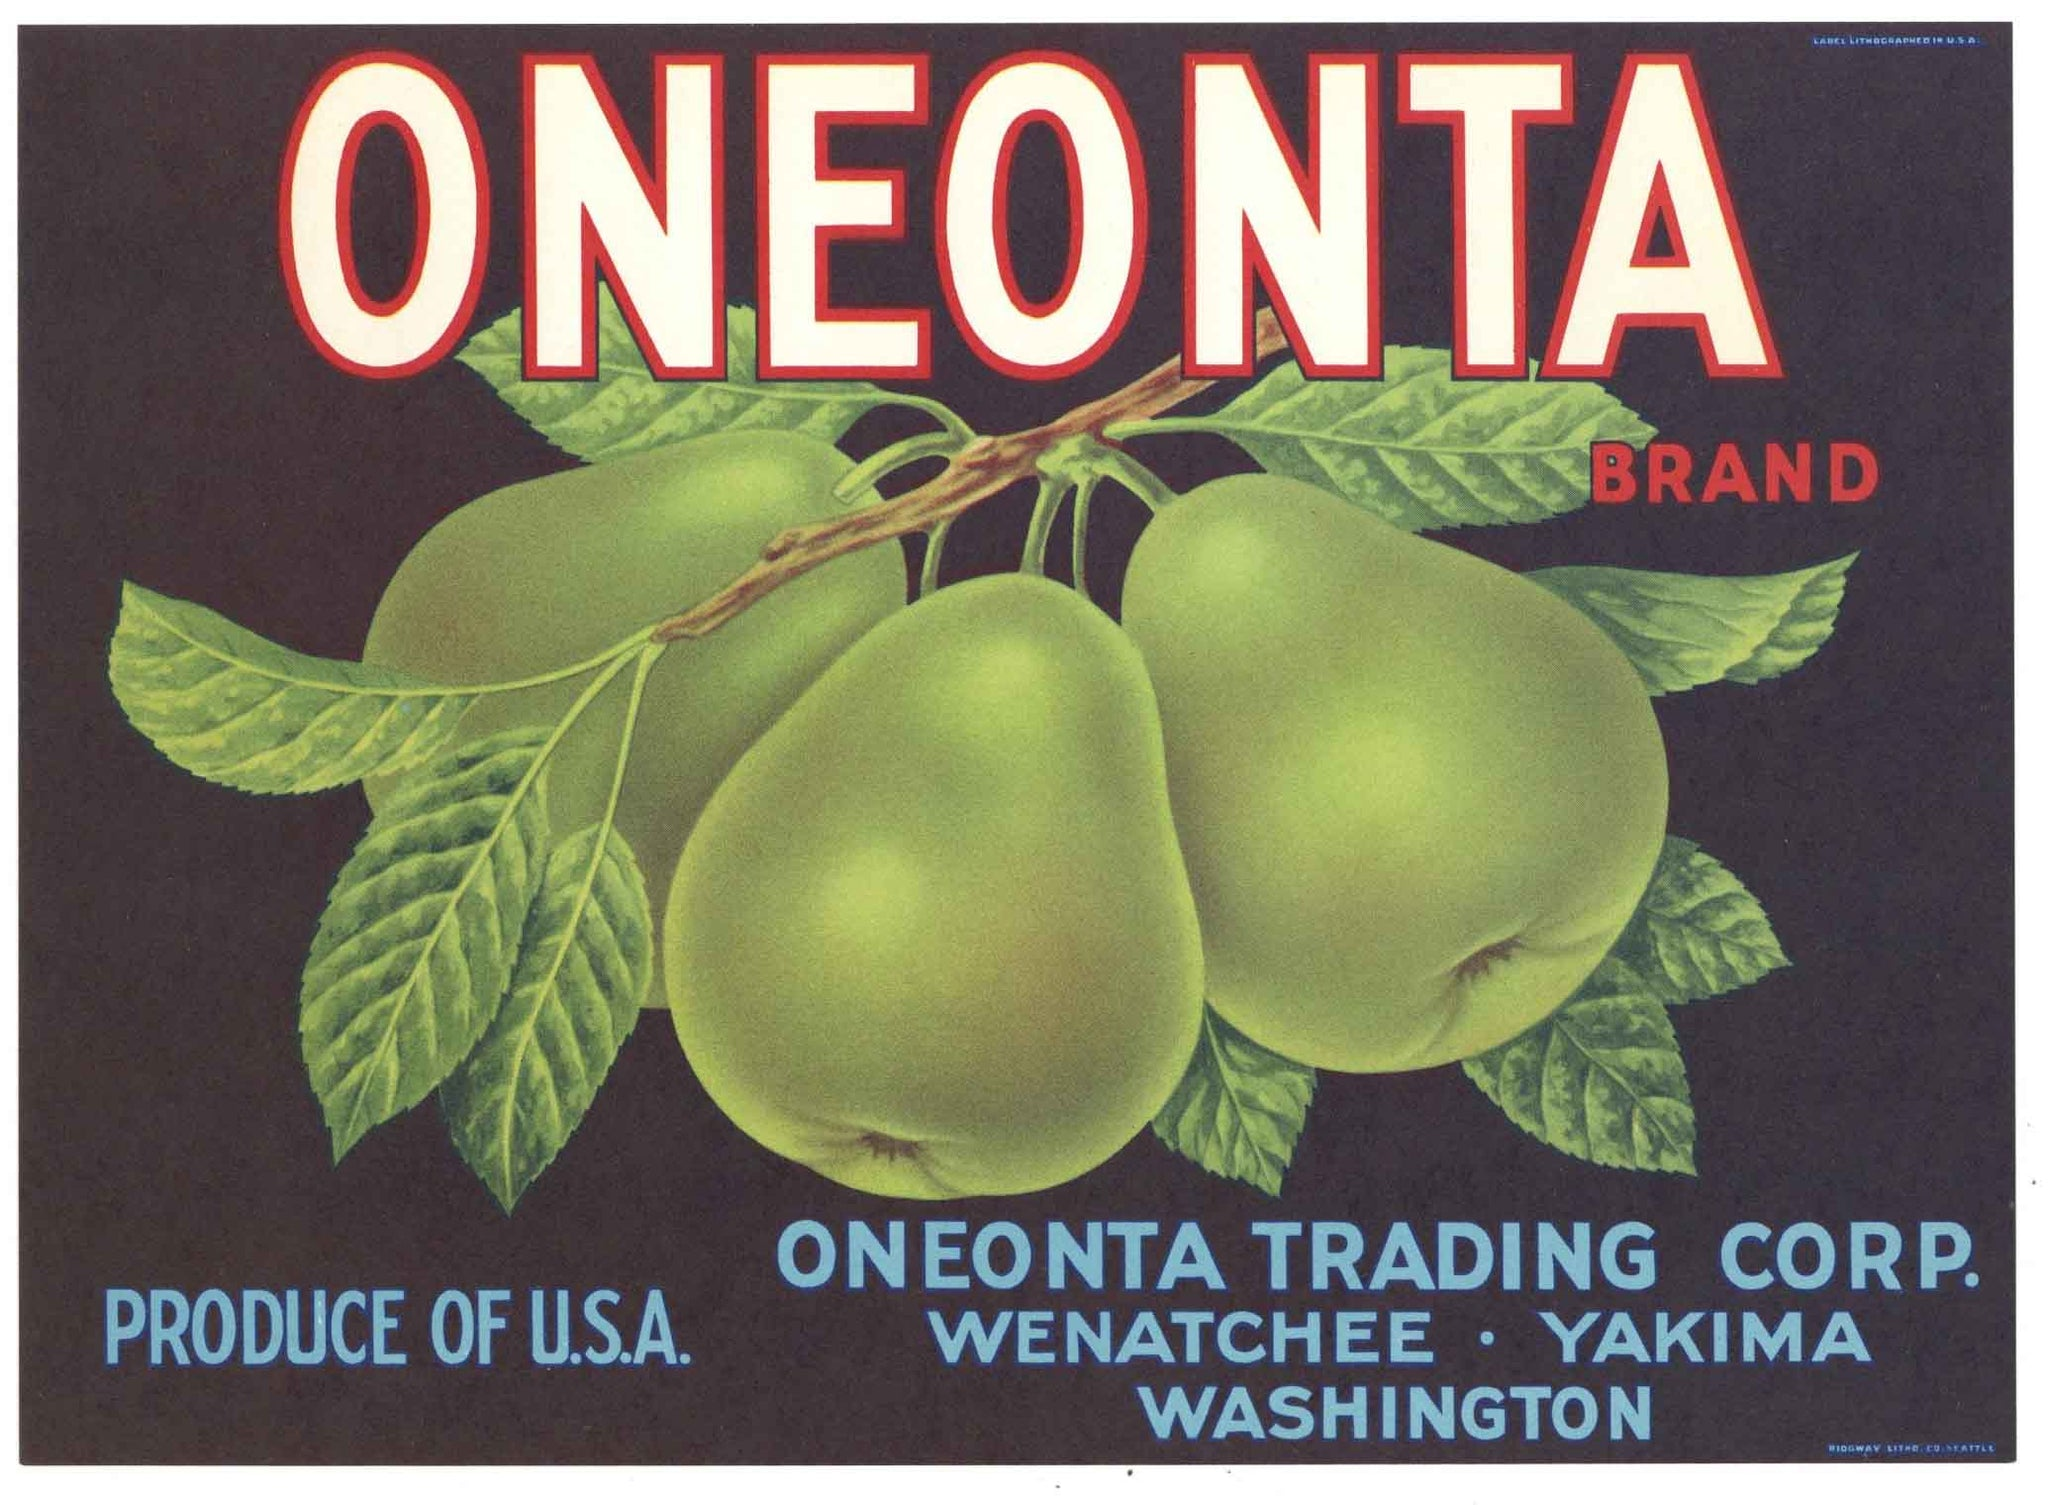 Oneonta Brand Vintage Washington Pear Crate Label